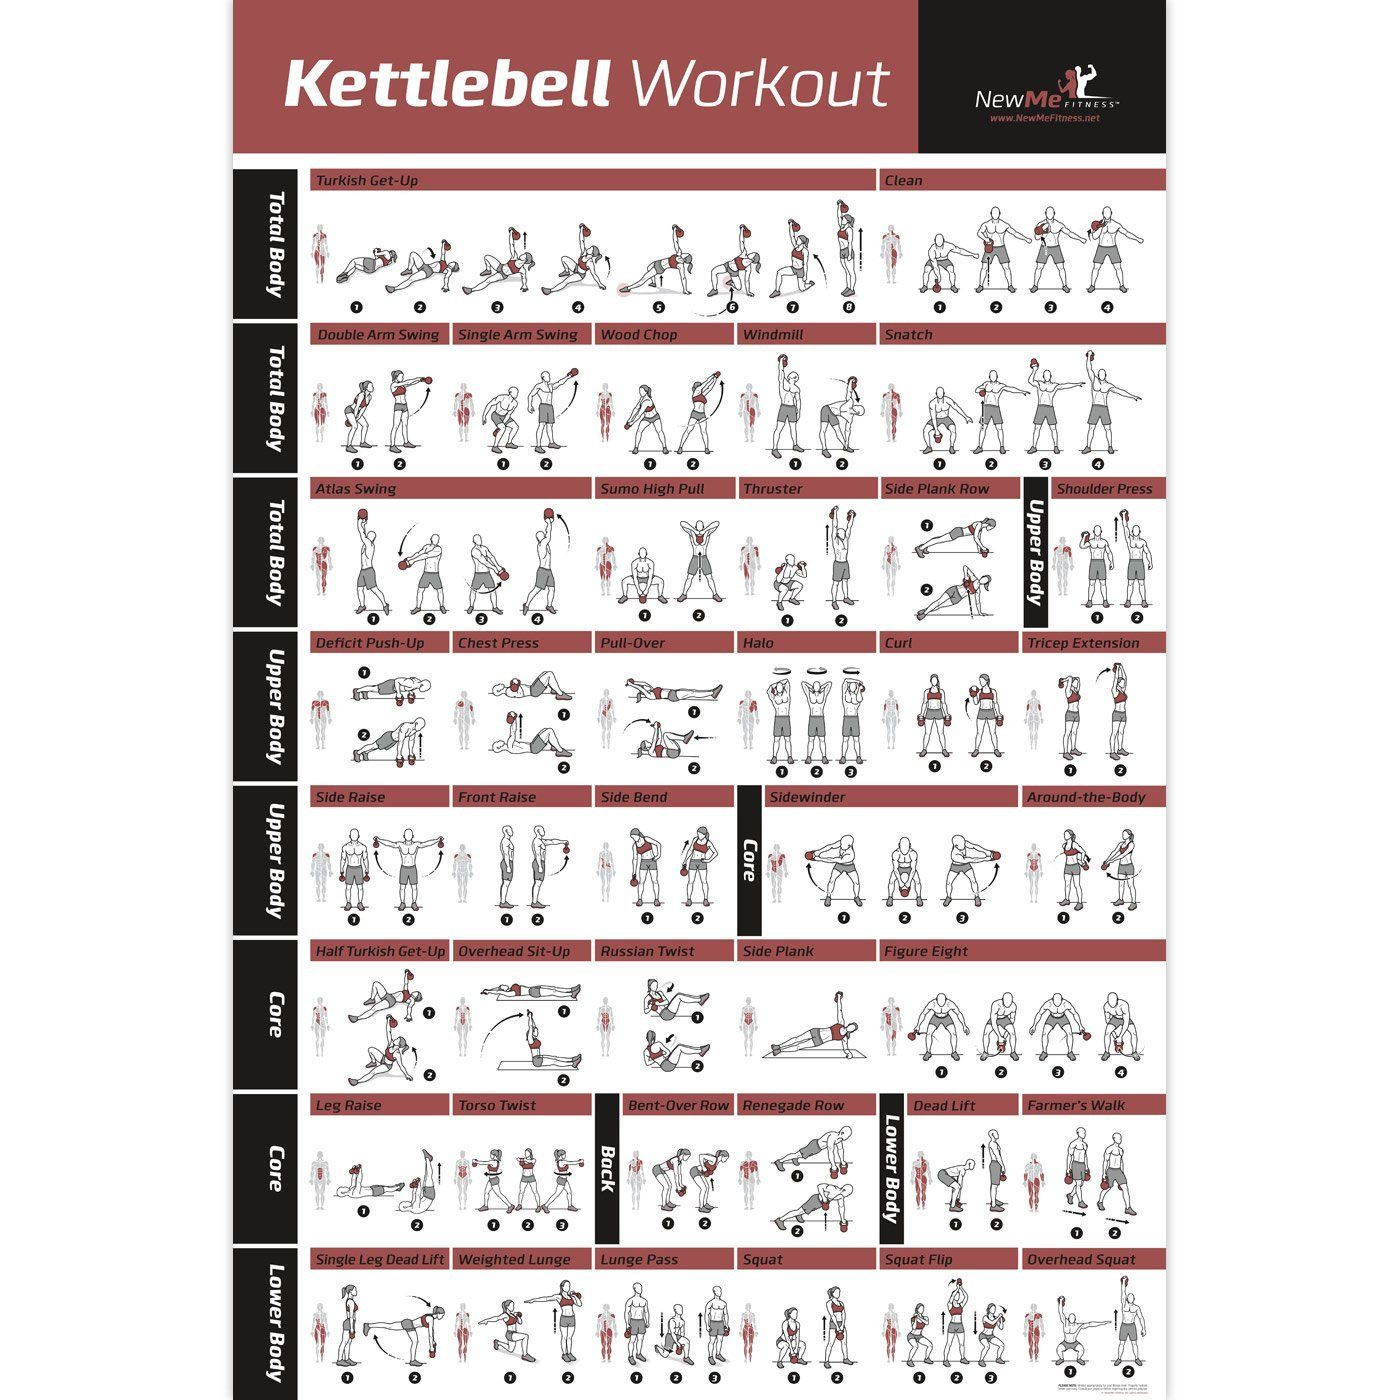 kettlebell workout exercise poster laminated home gym weight lifting routine hiit workout. Black Bedroom Furniture Sets. Home Design Ideas